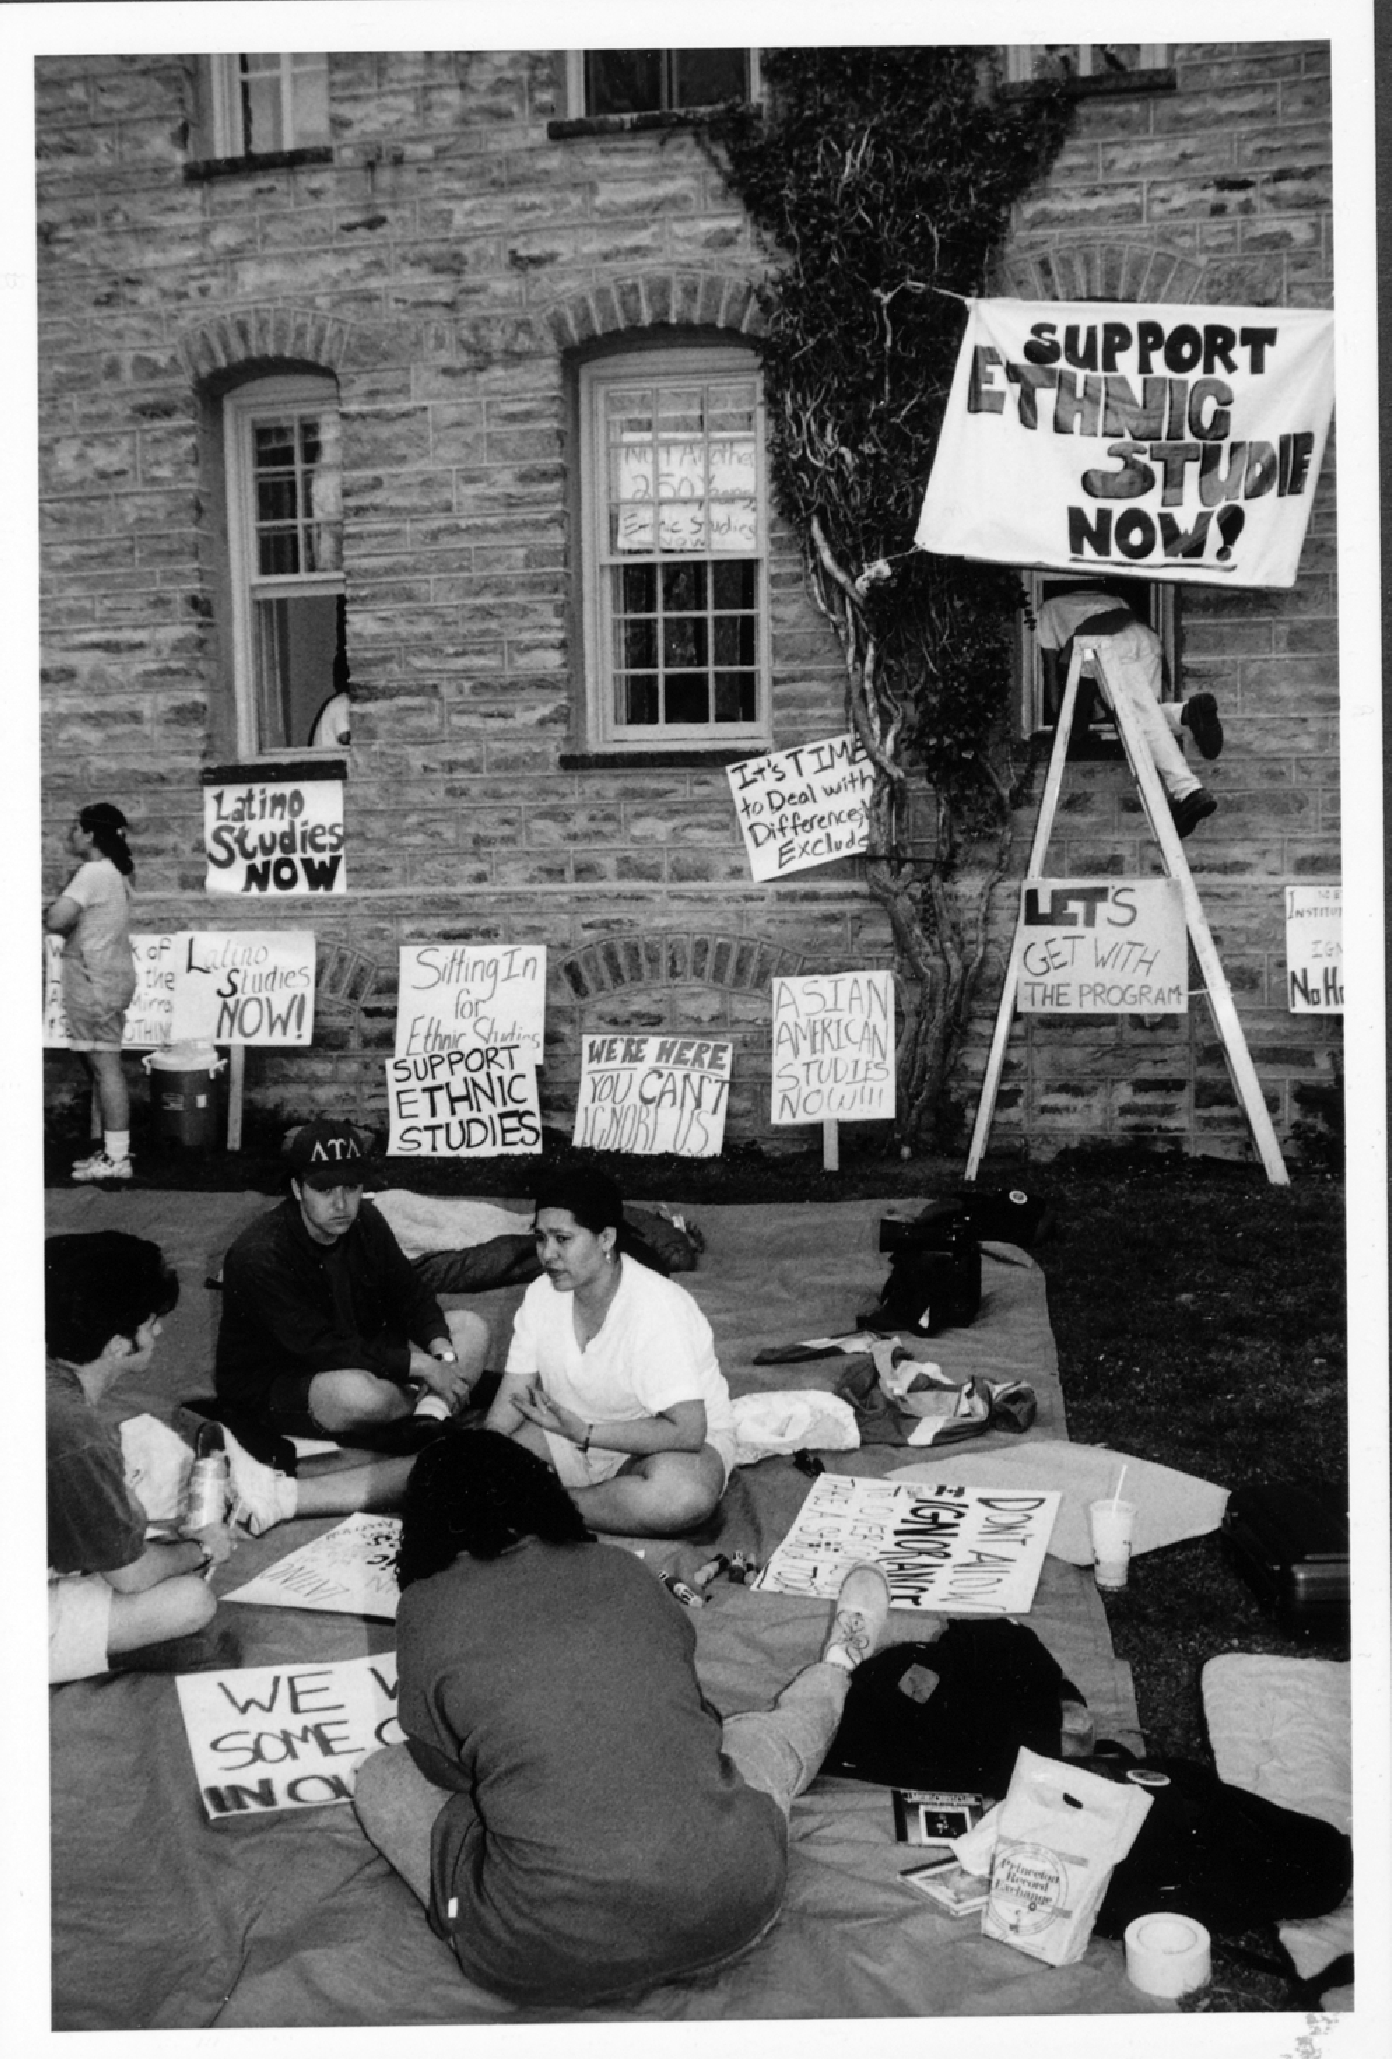 """Students sitting in a group during a 1995 protest for ethnic studies, with signs such as """"Support Ethnic Studies Now!"""""""